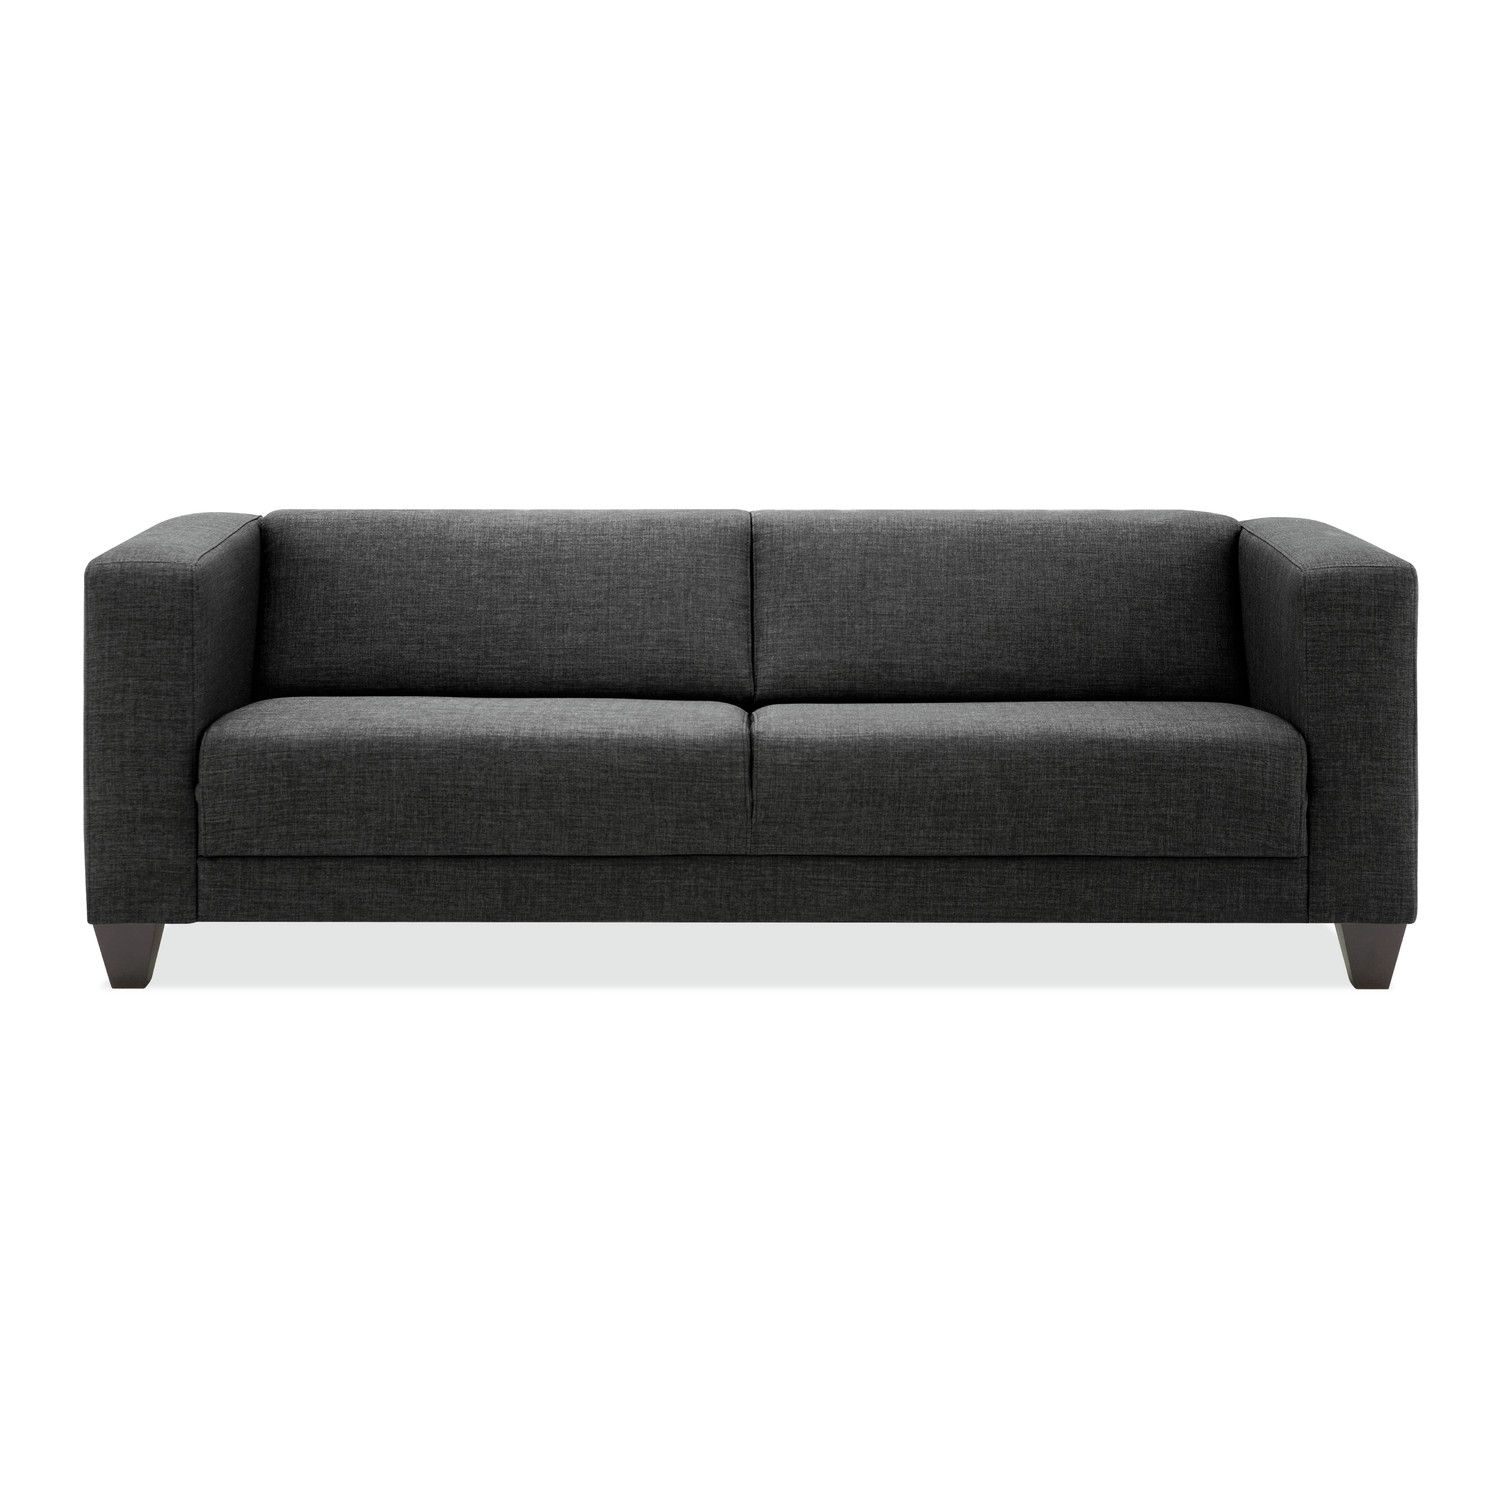 eq3 sofa dual reclining and loveseat stella gradschoolfairs